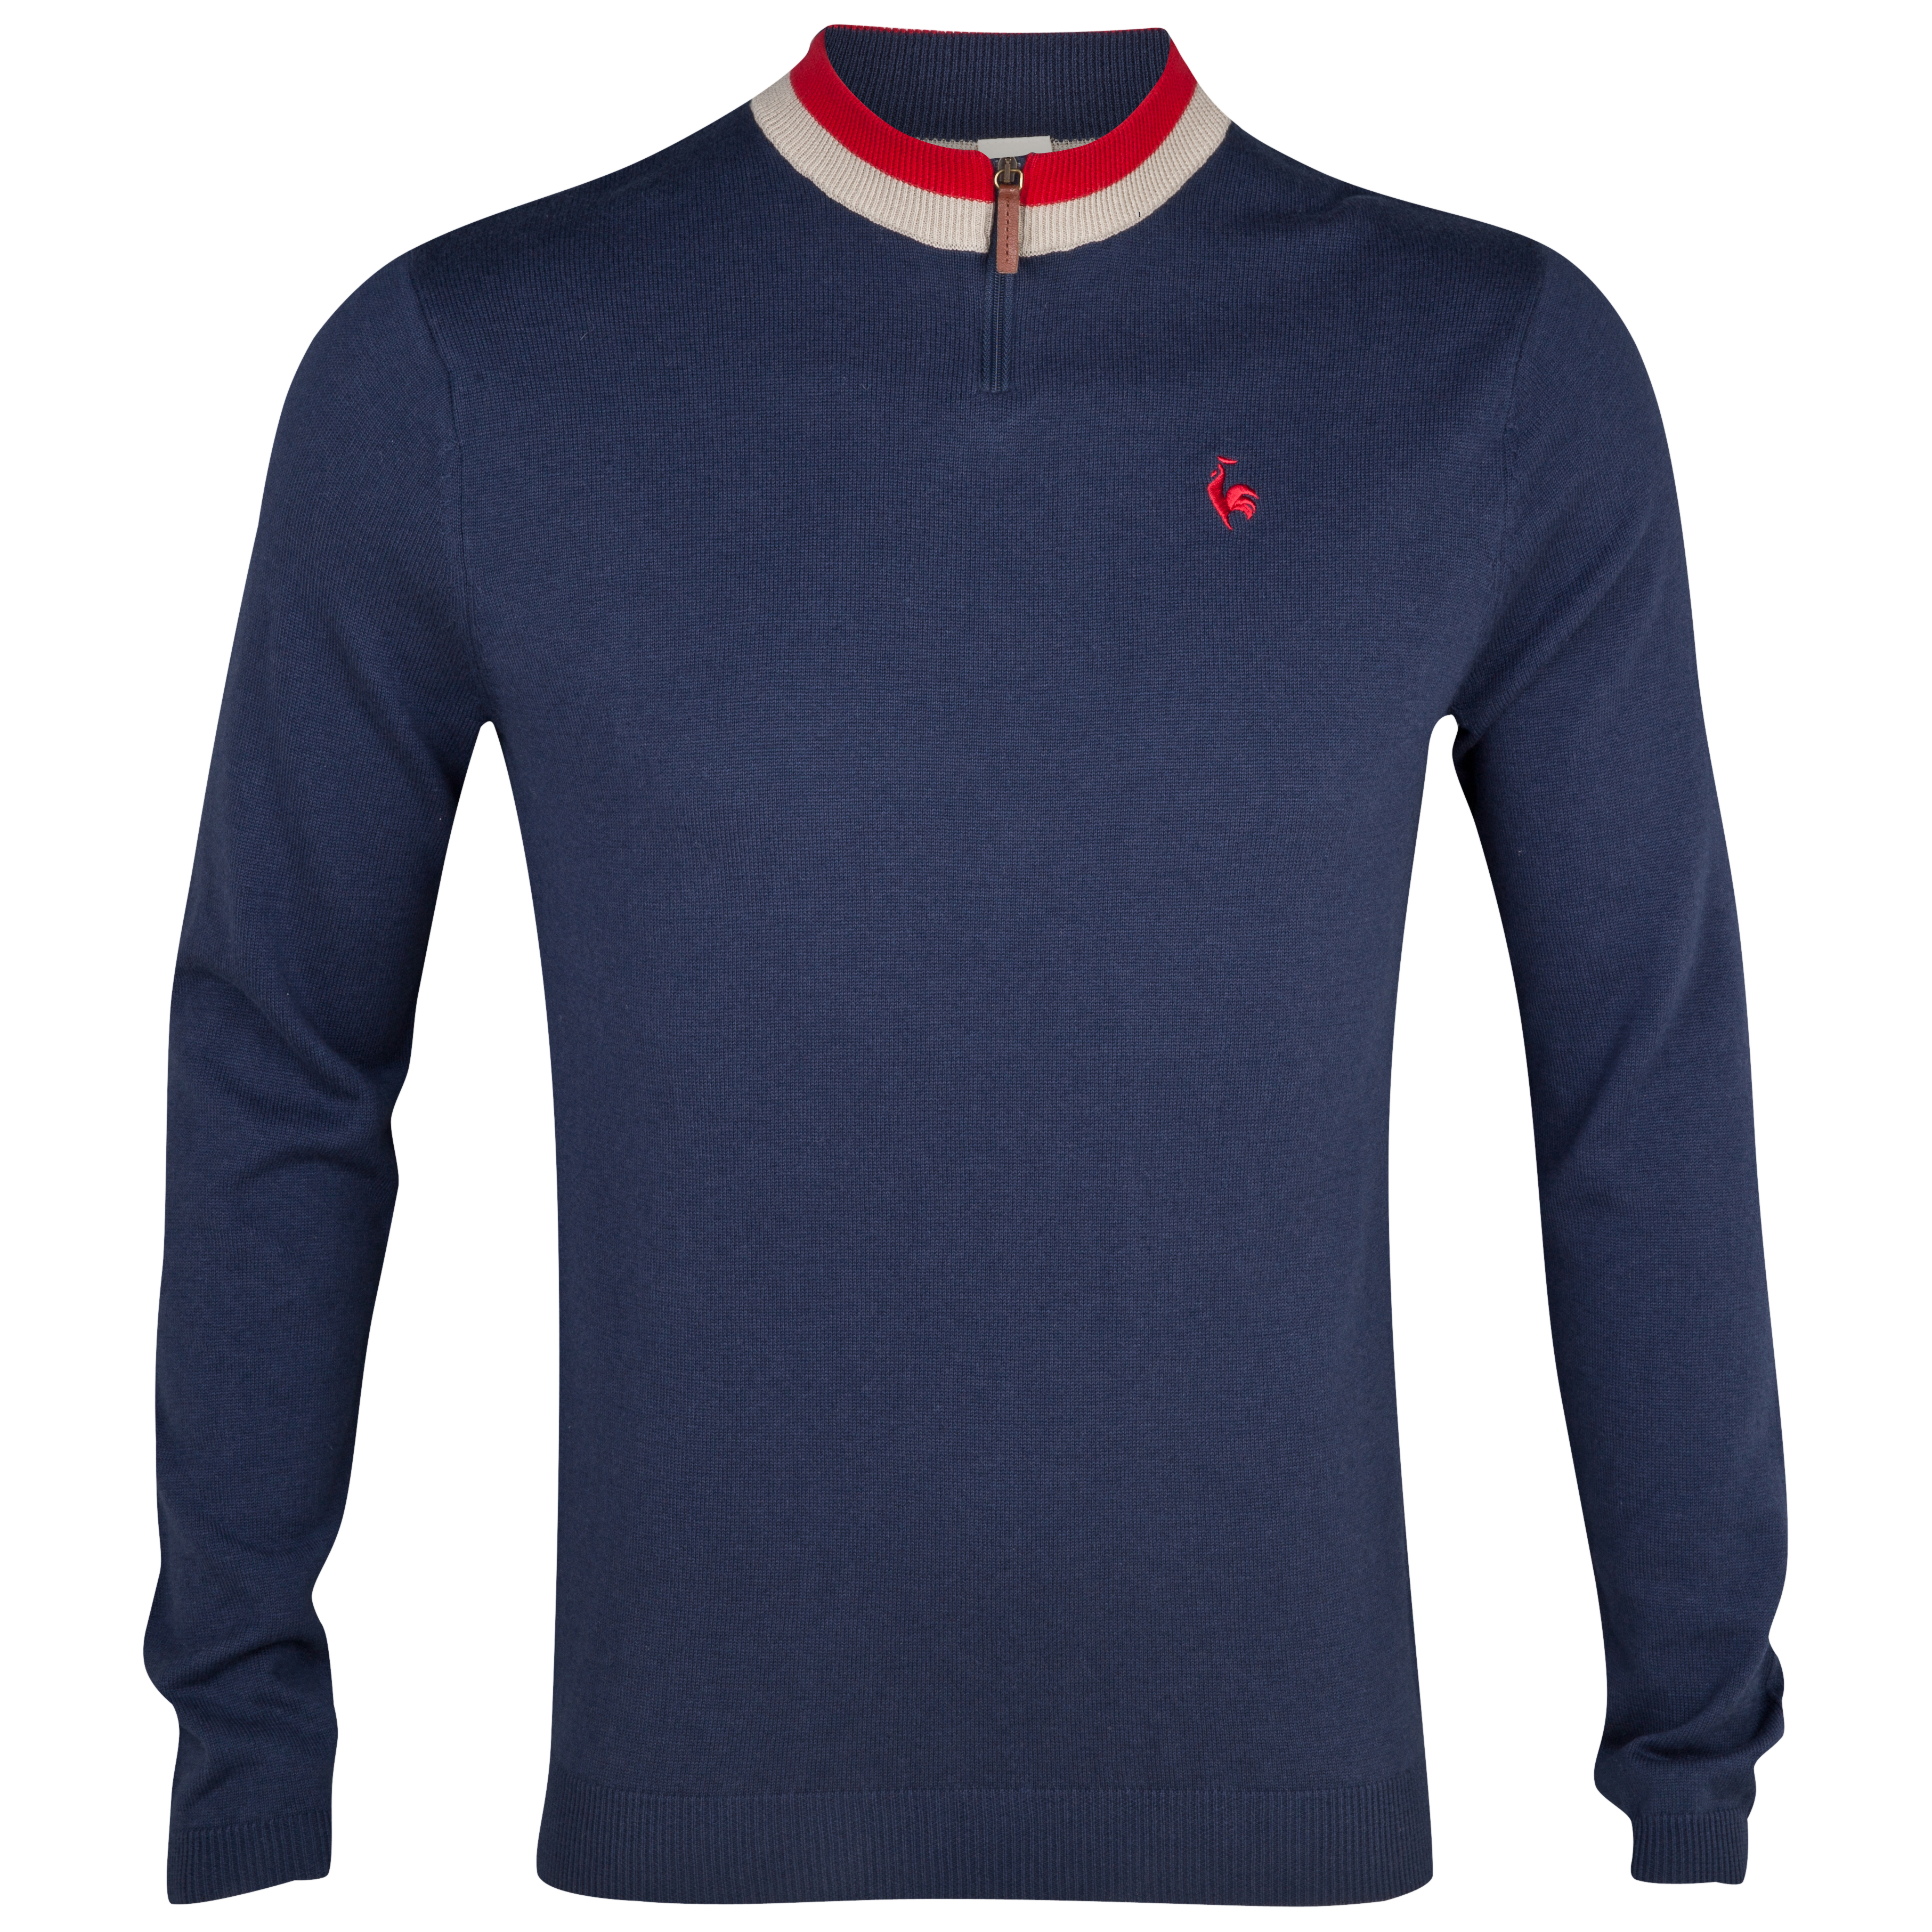 Le Coq Sportif Pull Over Zip Knit - Eclipse